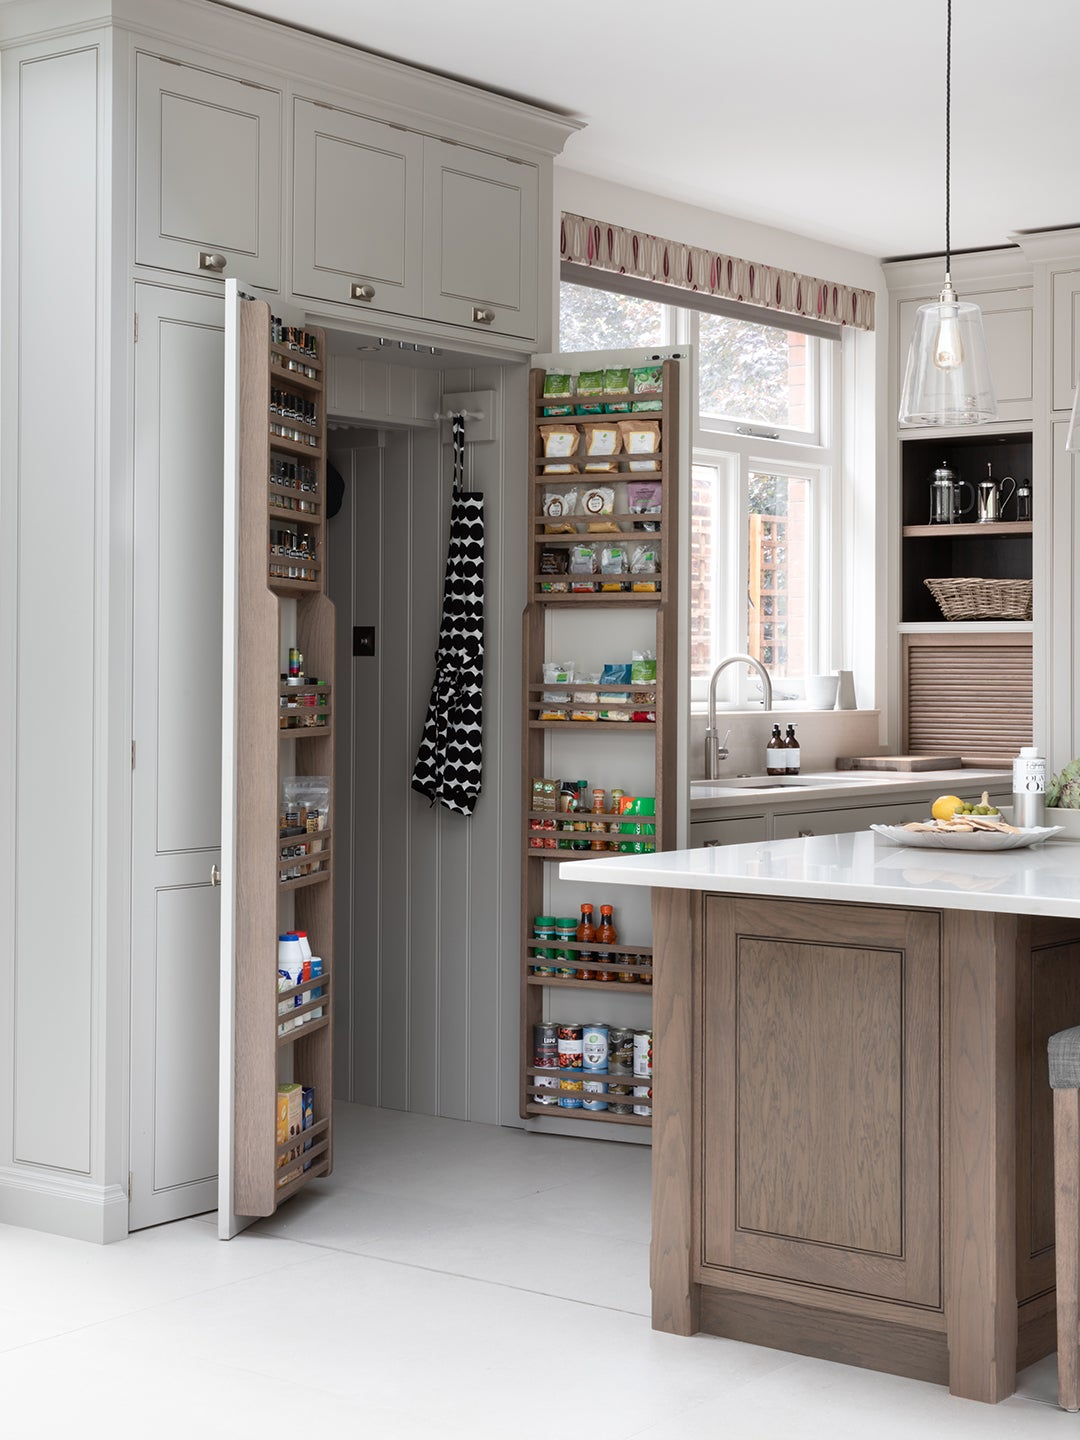 The Best Walk-In Pantry Organization Ideas Are Hiding in Plain Sight